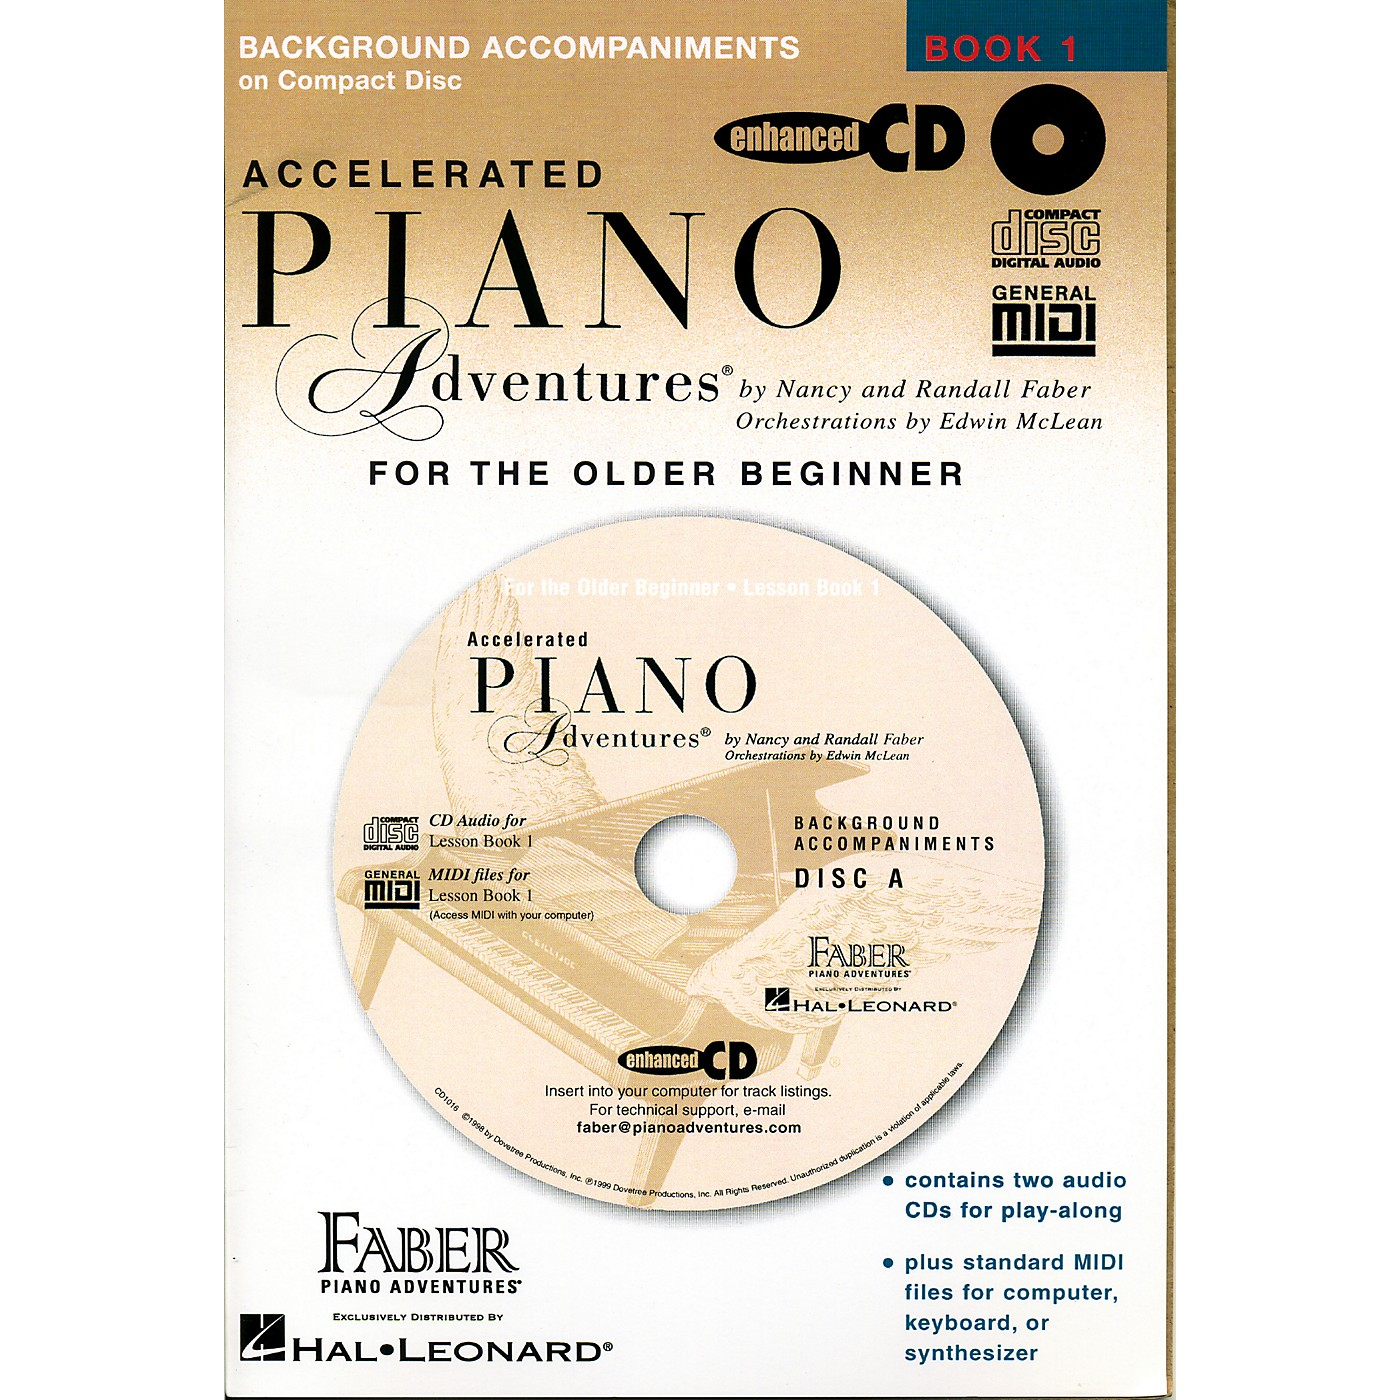 Faber Piano Adventures Accelerated Piano Adventures for The Older Beginner CD - Faber Piano thumbnail